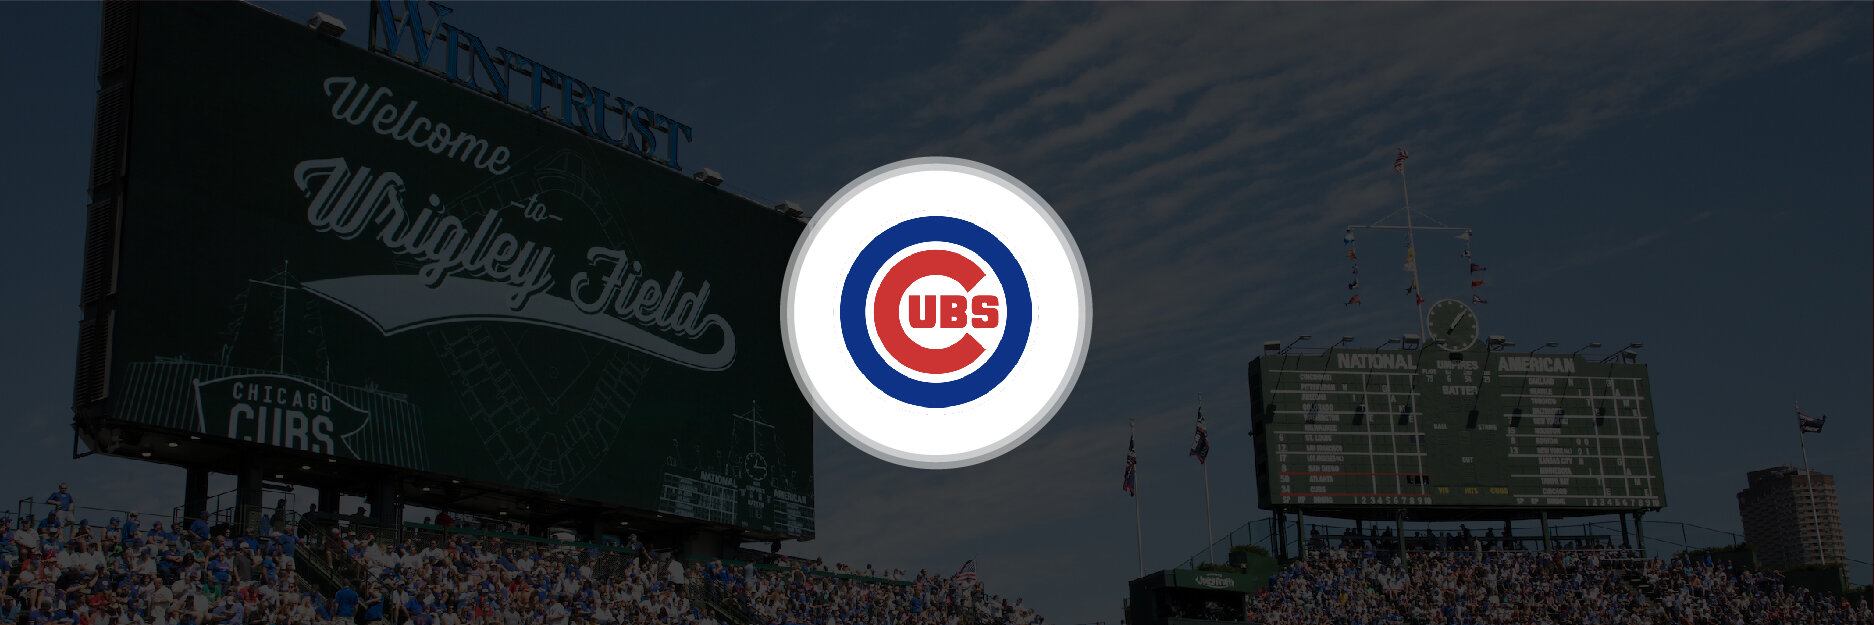 Chicago Cubs Analysis Before 2020 Season Start